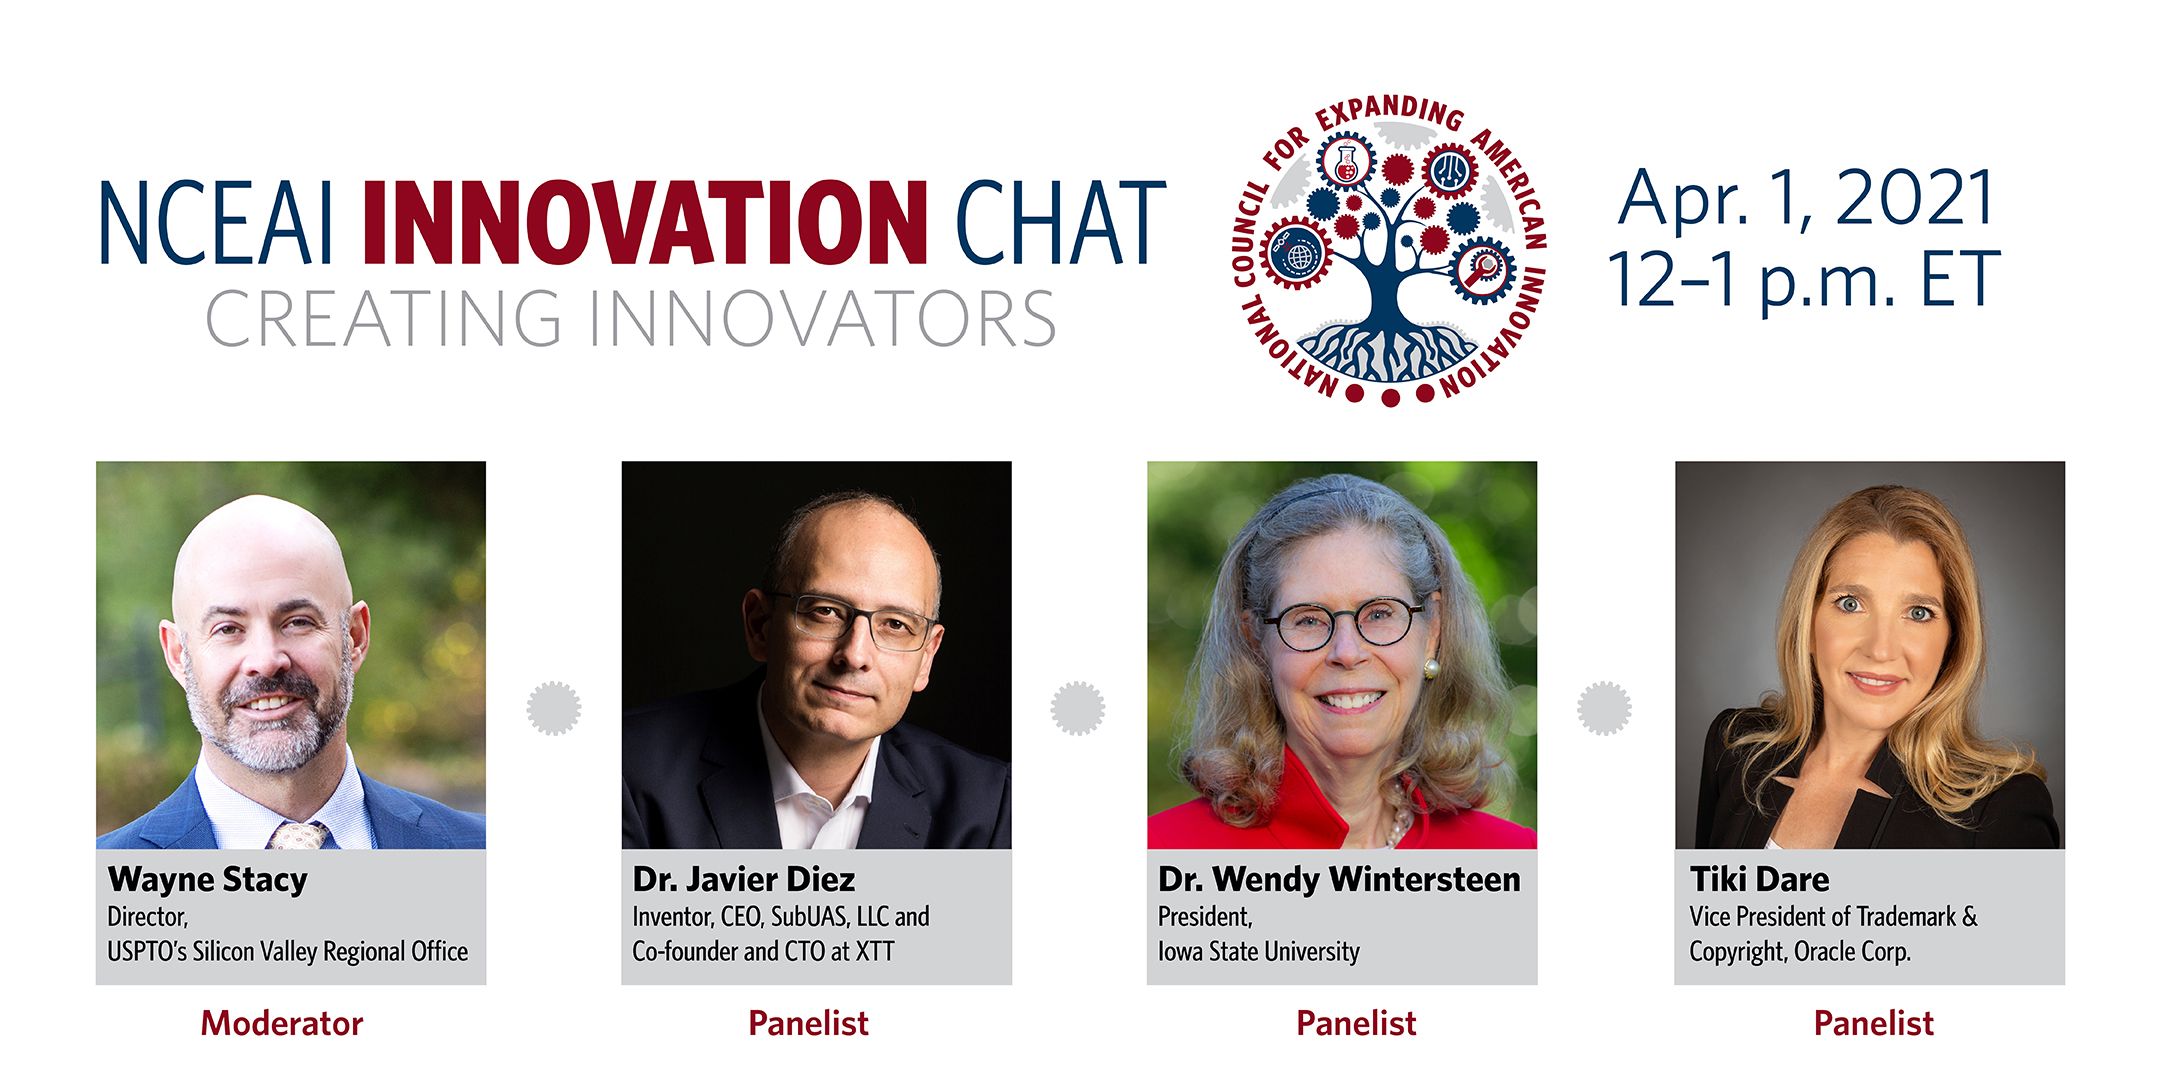 NCEAI Innovation Chat -- April 1, 12:00 p.m. ET